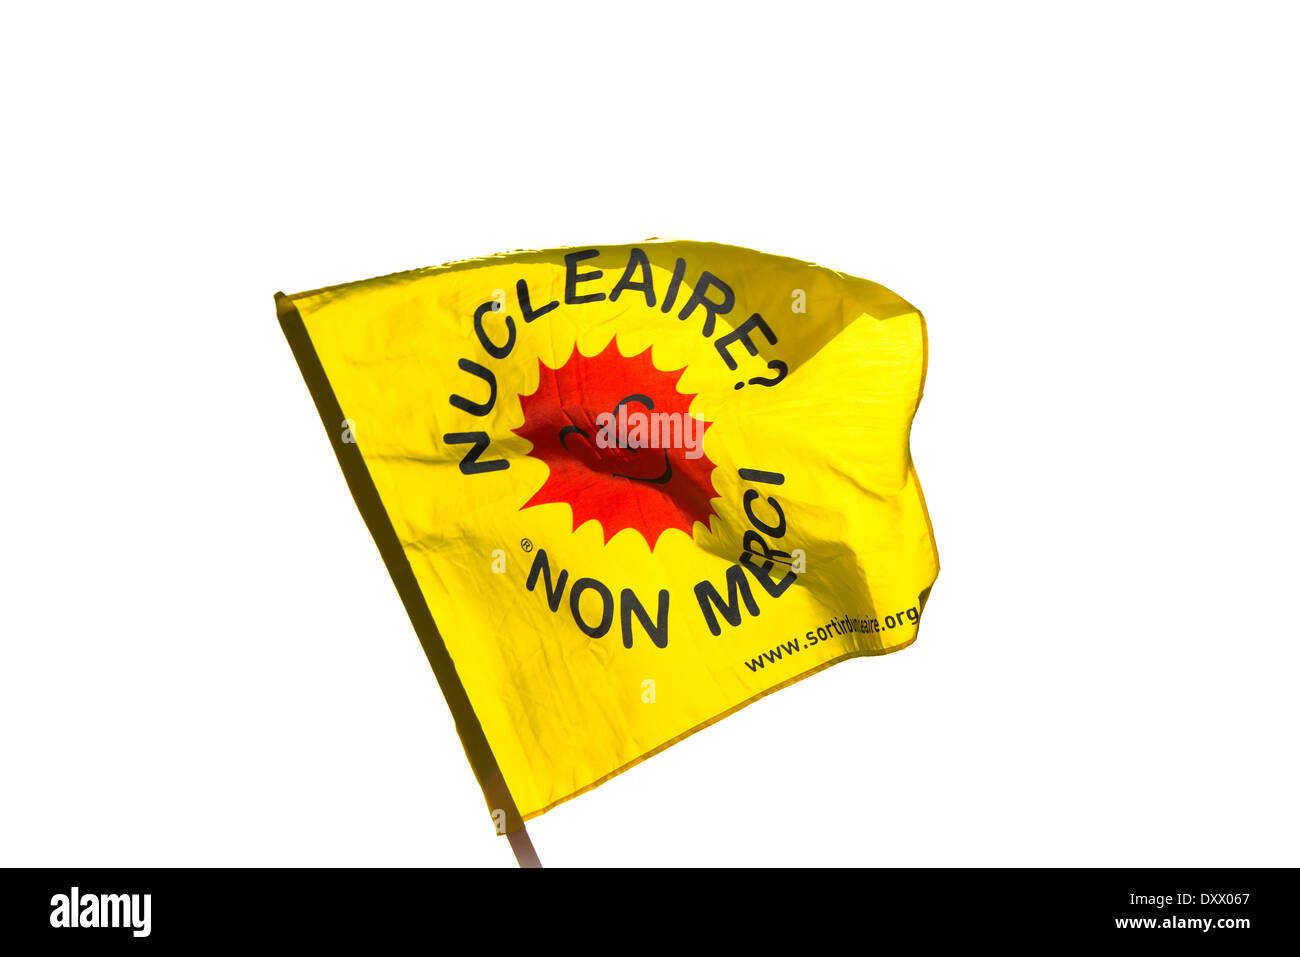 Flag, 'Nucleaire? Non merci', French for 'Nuclear power? No thanks' - Stock Image